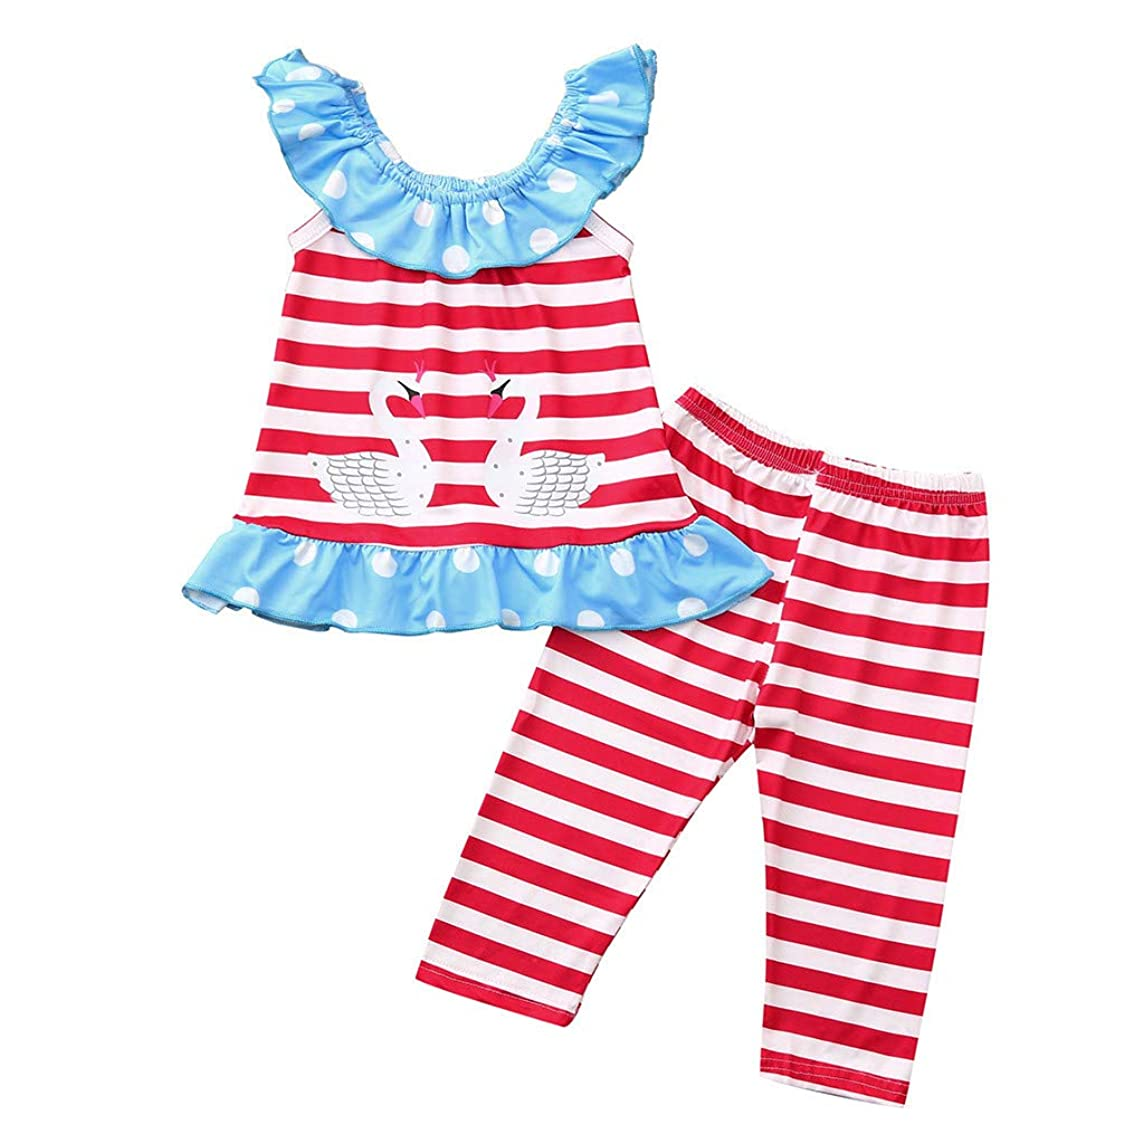 Luonita Toddler Girls Outfits Suits Stripe Ruffles Goose Print Tops Tee T-Shirt+Stripe Printing Pants Clothes Sets for 6M-4T(Toddler/Little Kids/Big Kids)